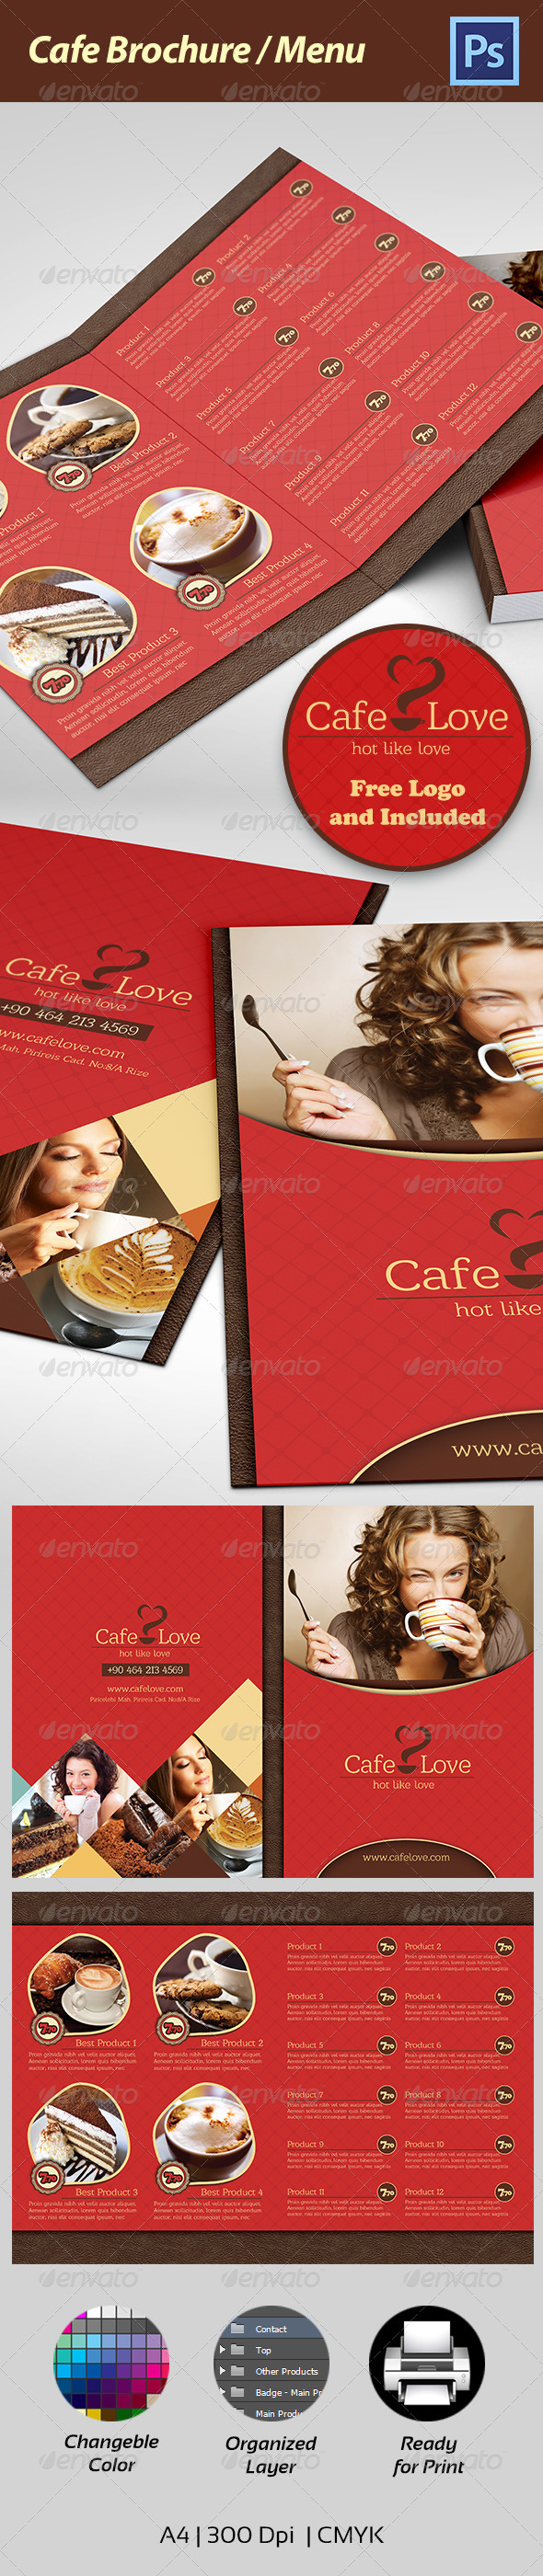 Coffee Brochure Menu